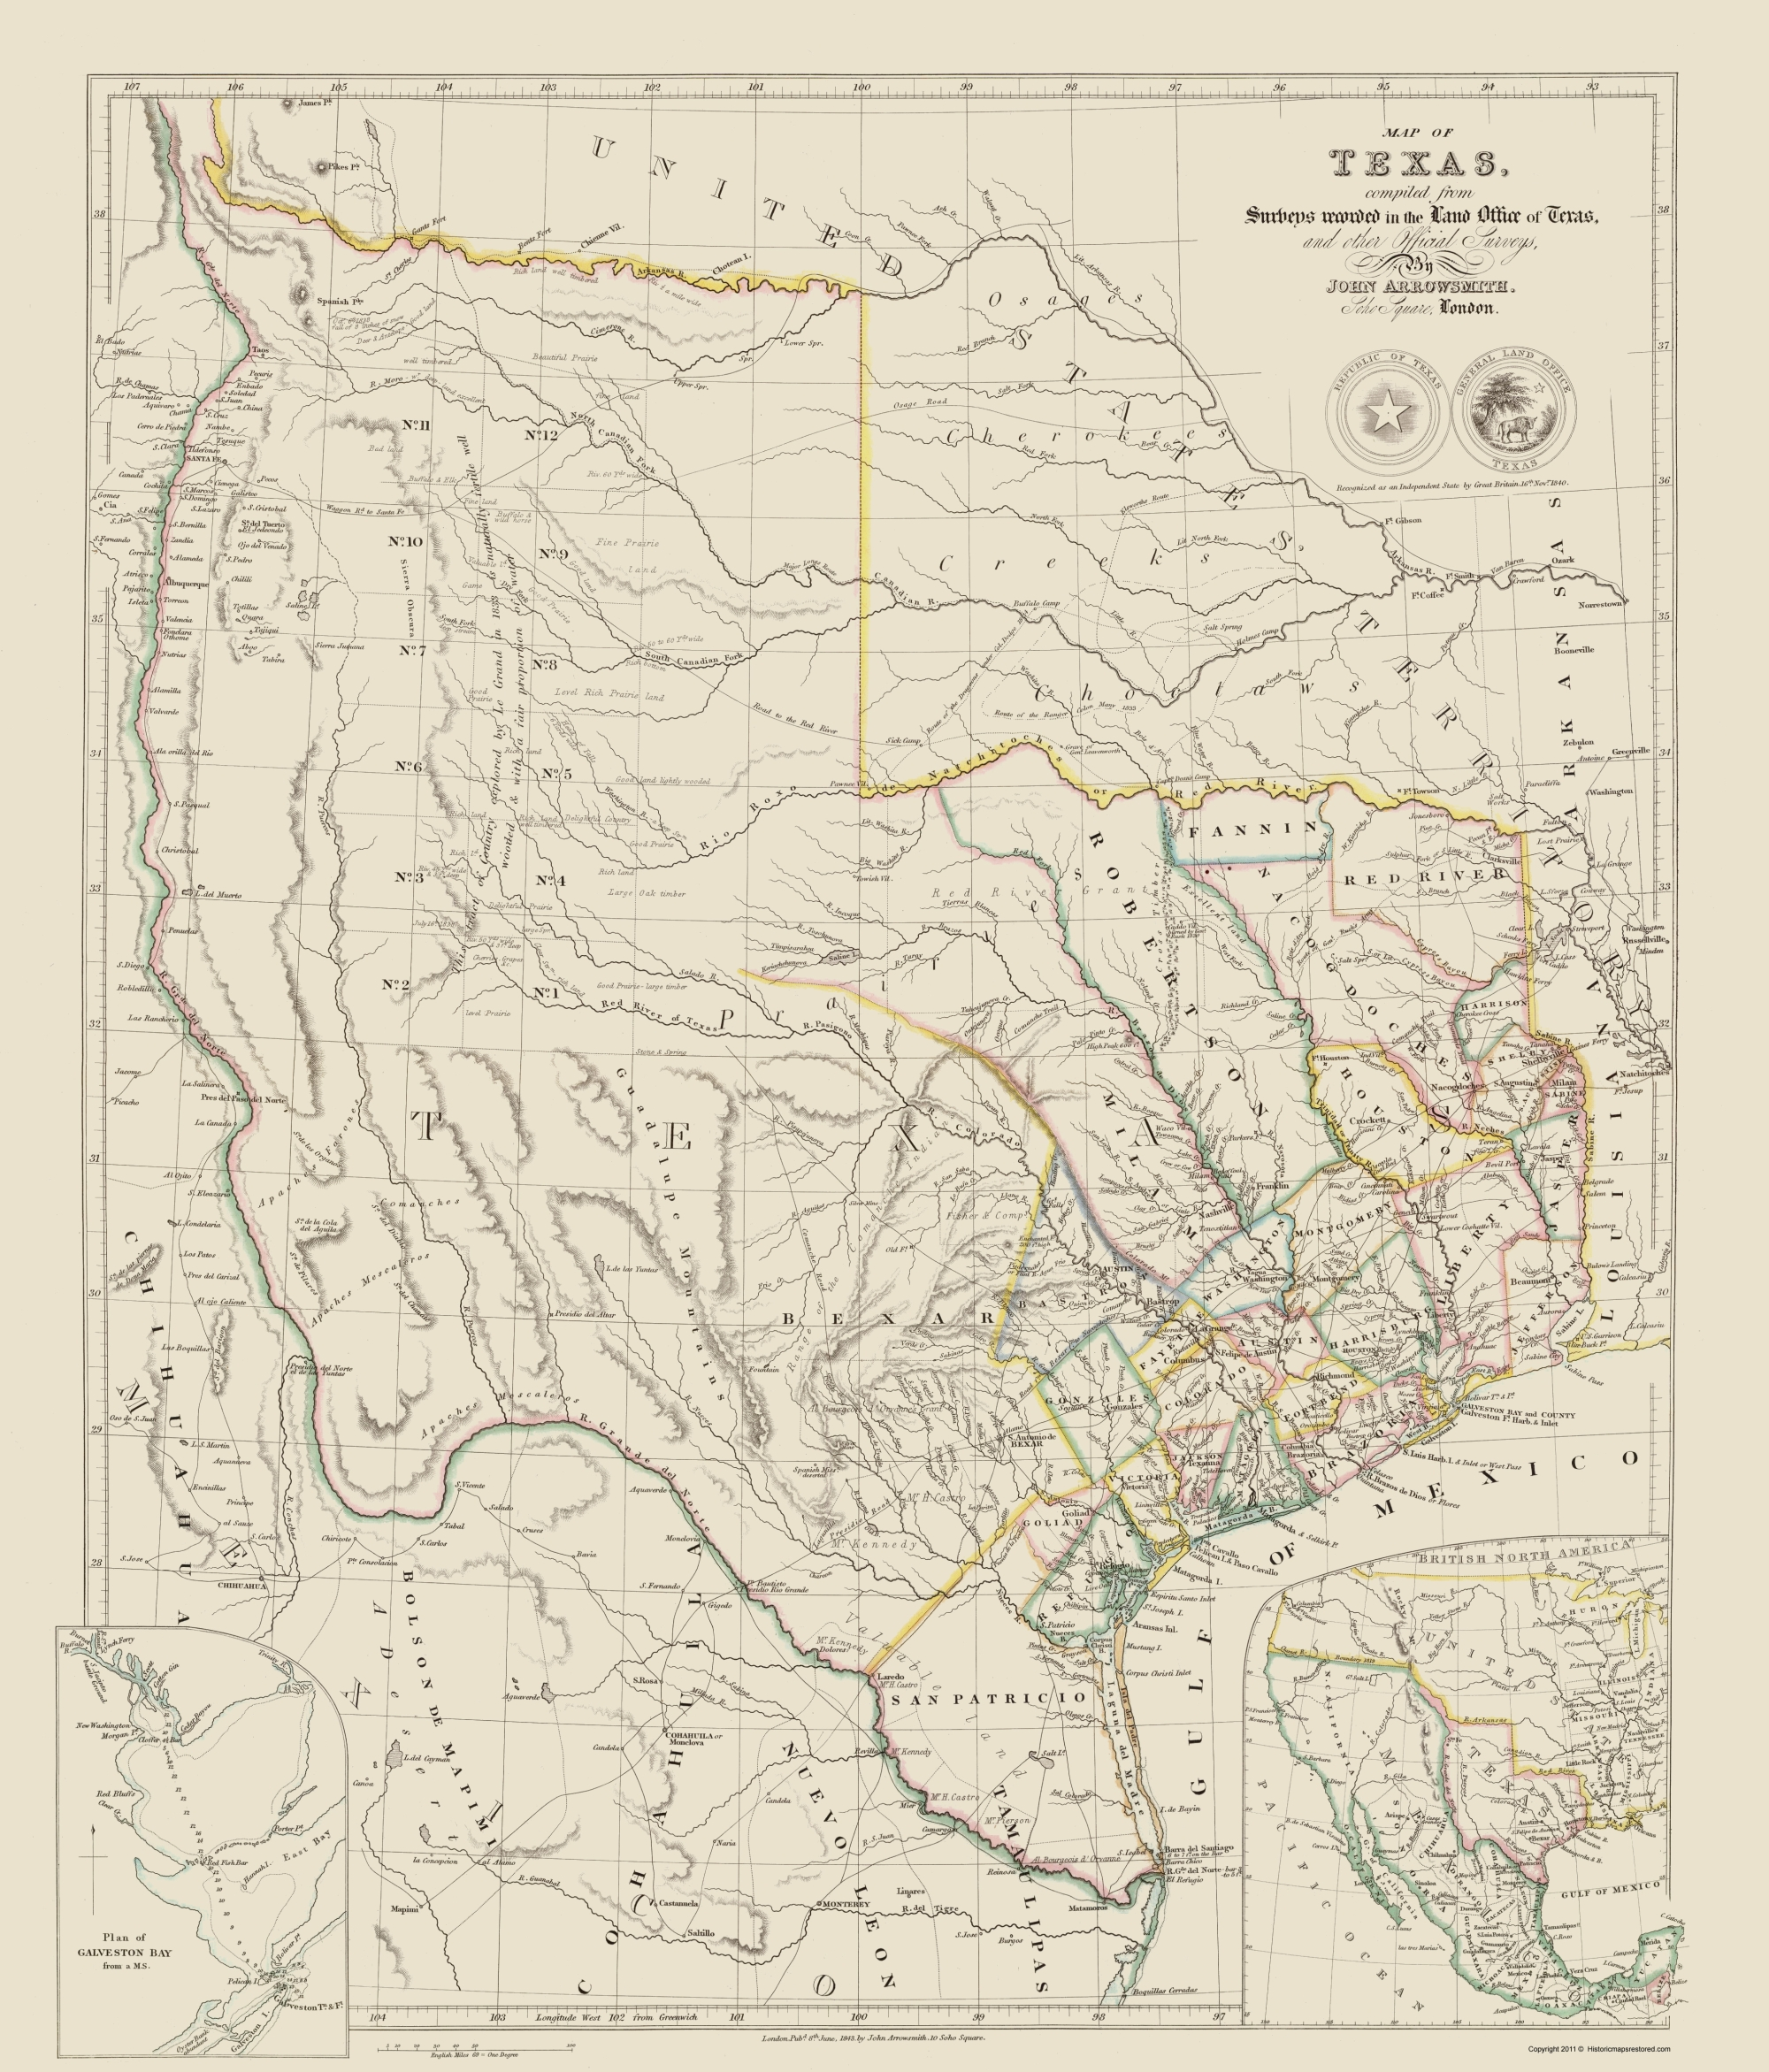 Map Of Texas 1840.Old State Map Texas And Surrounding Territories Arrowsmith 1840 23 X 26 94